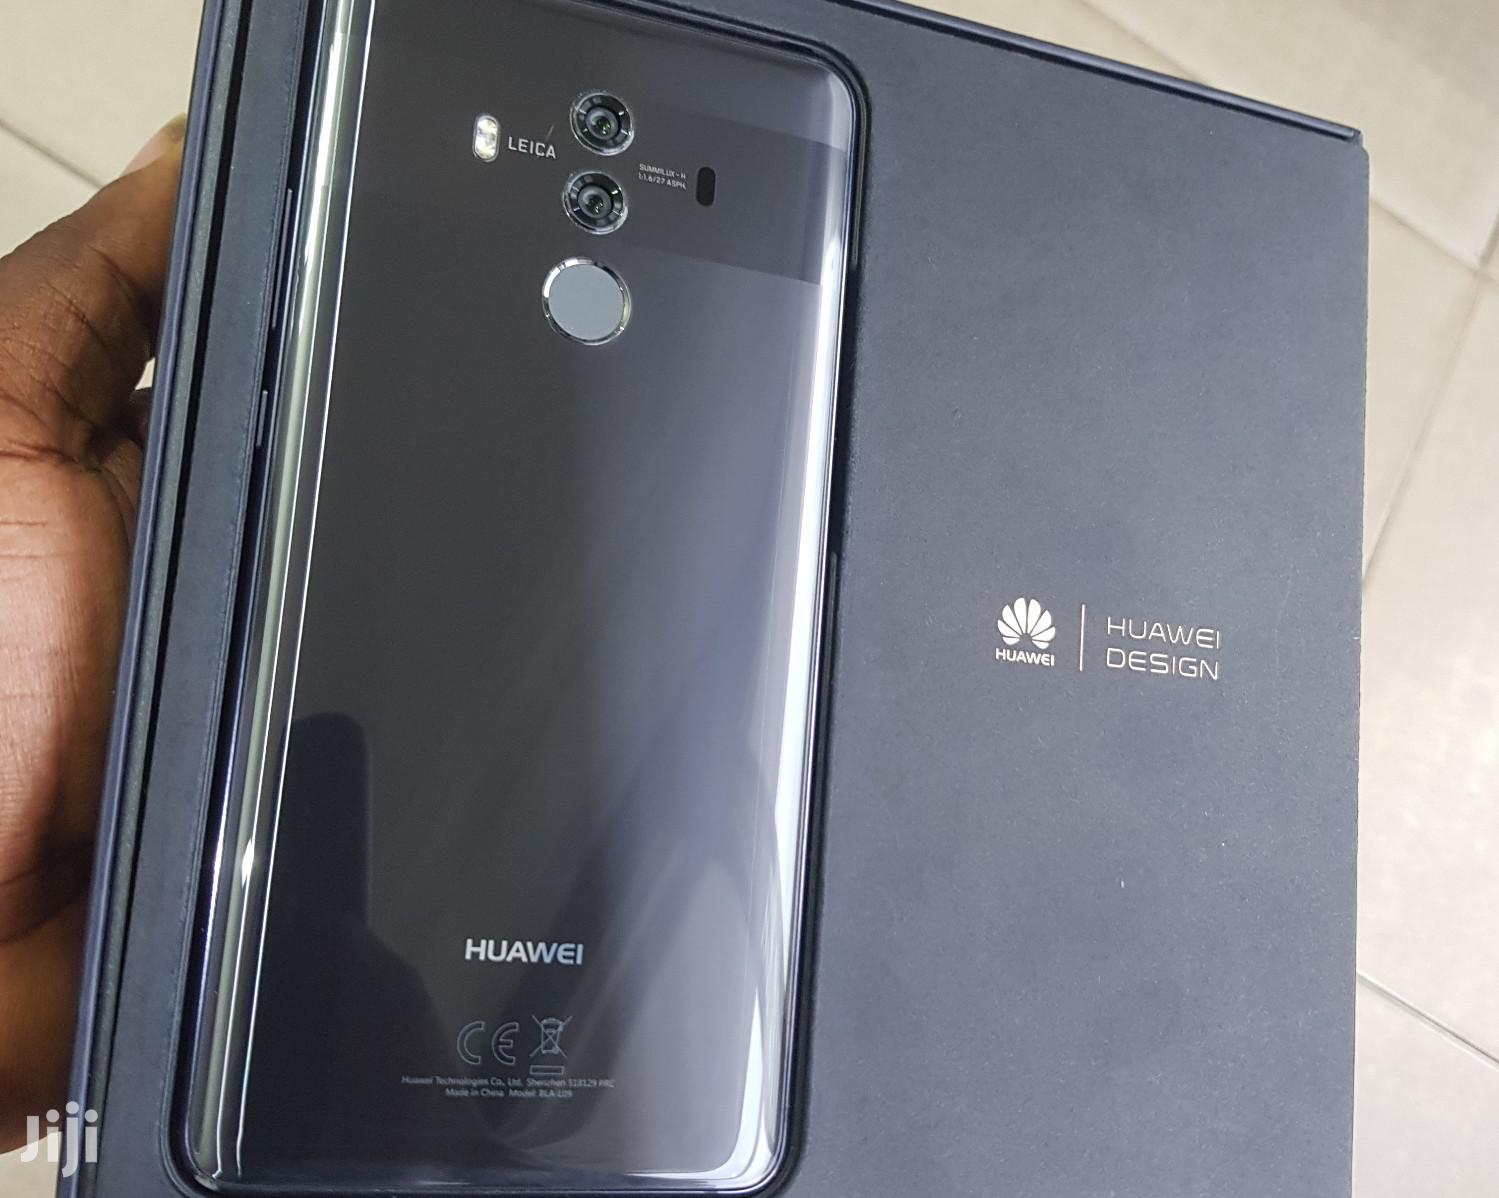 Archive: Huawei Mate 10 Pro 64 GB Black